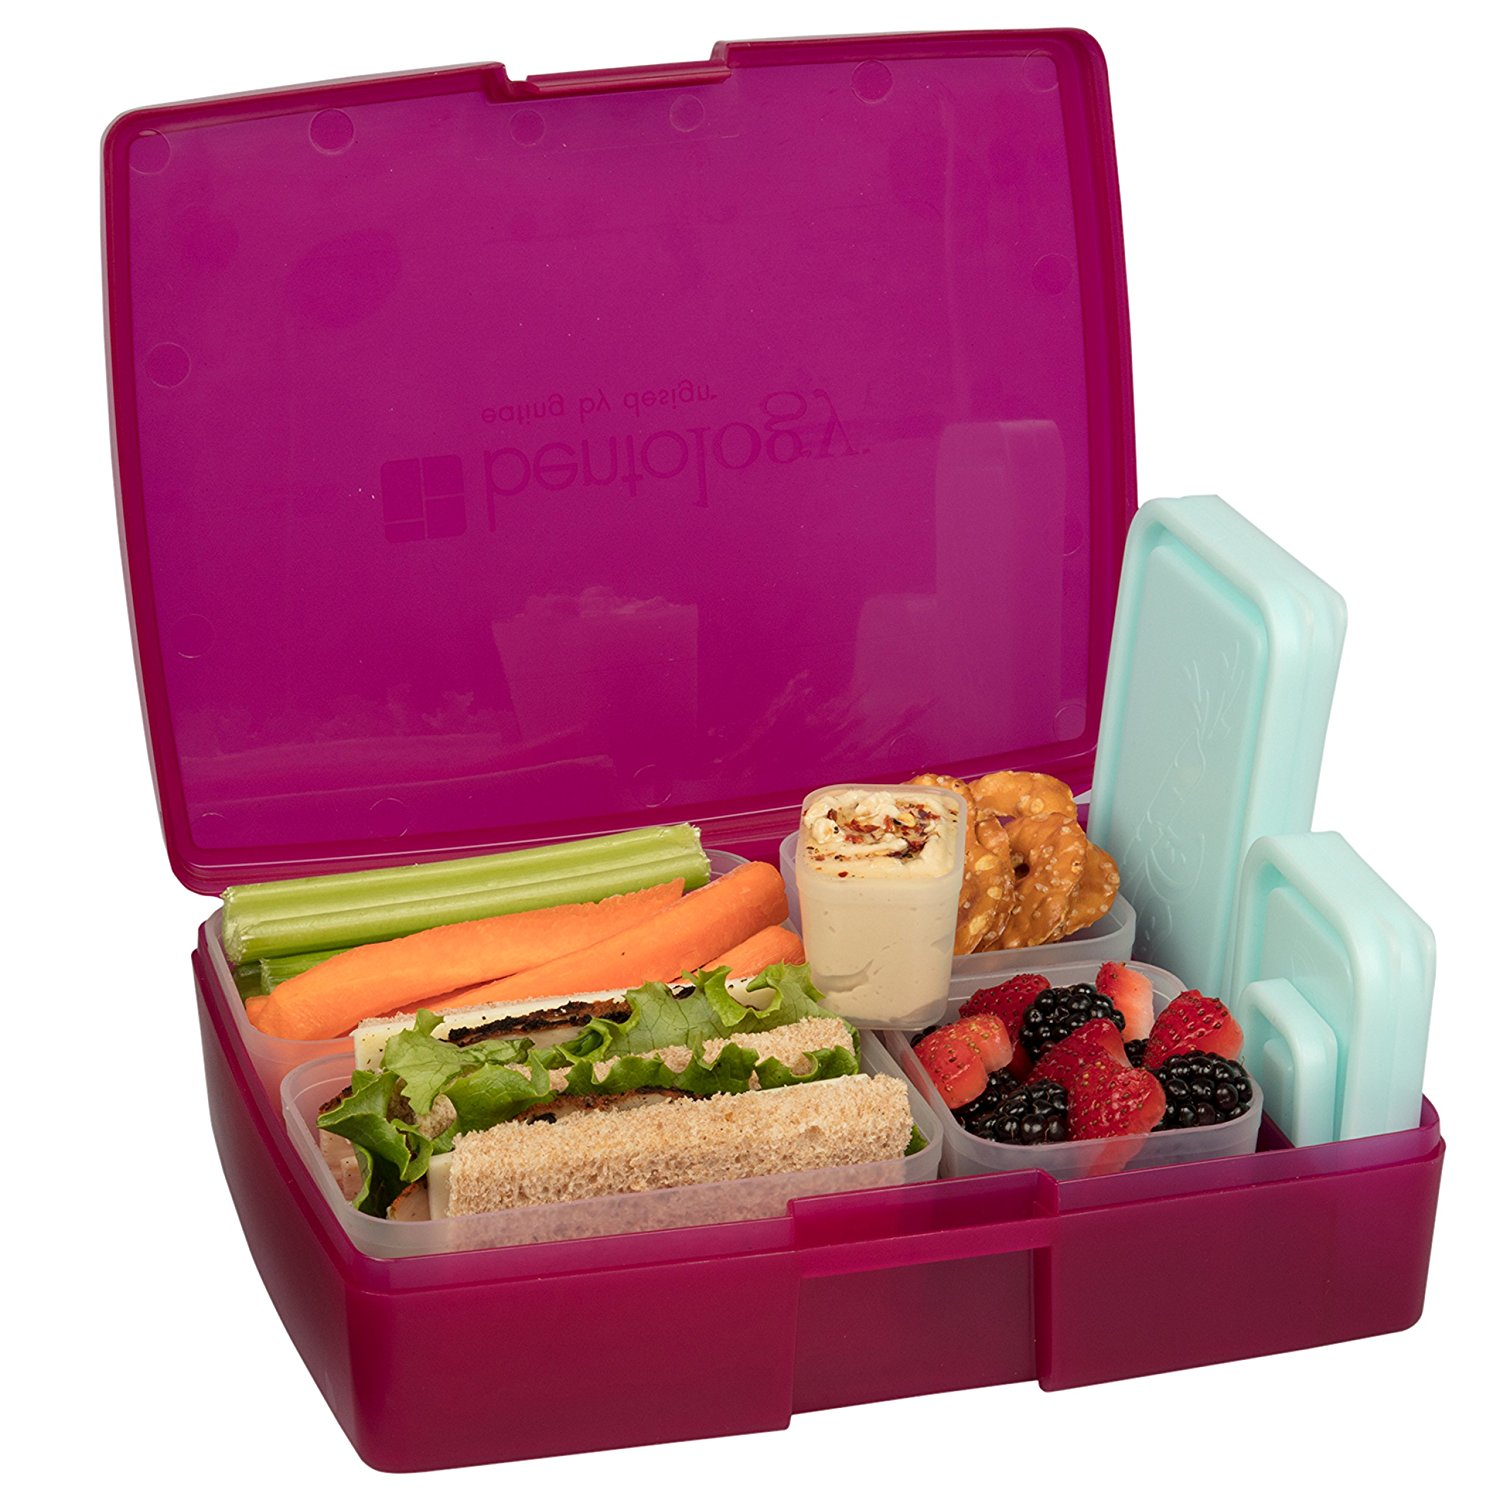 10pcs Black Rectangular Disposable Food Container Lunch ...  |Bento Box Lunch Containers